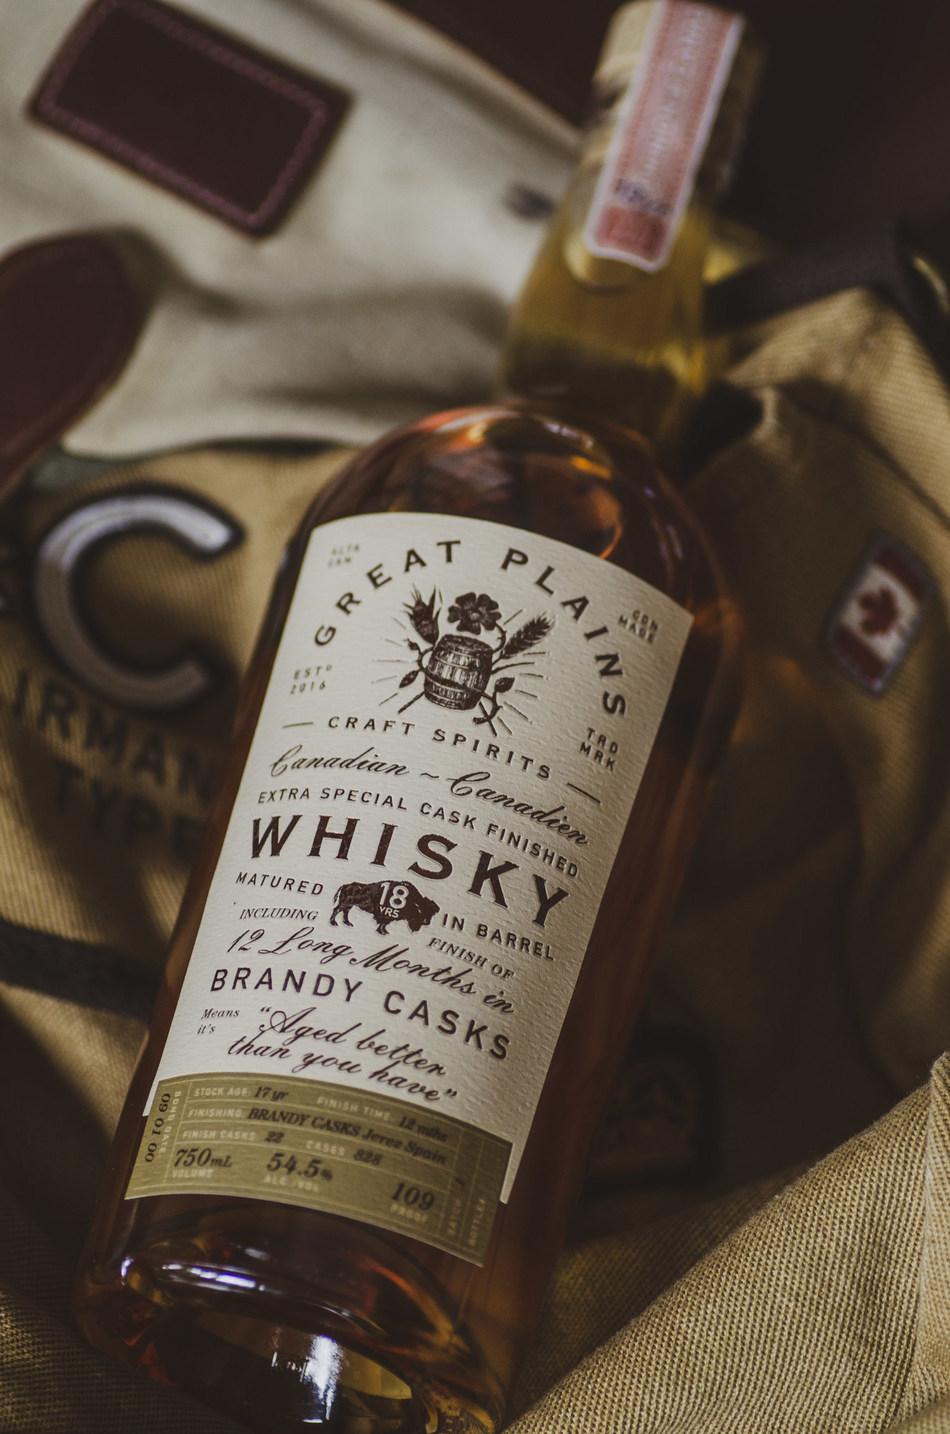 Great Plains Craft Spirits 18 Year Old Jerez Brandy Finished Whisky won Gold and Award of Excellence for Best New Whisky at the 2020 Canadian Whisky Awards (CNW Group/Great Plains Craft Spirits)